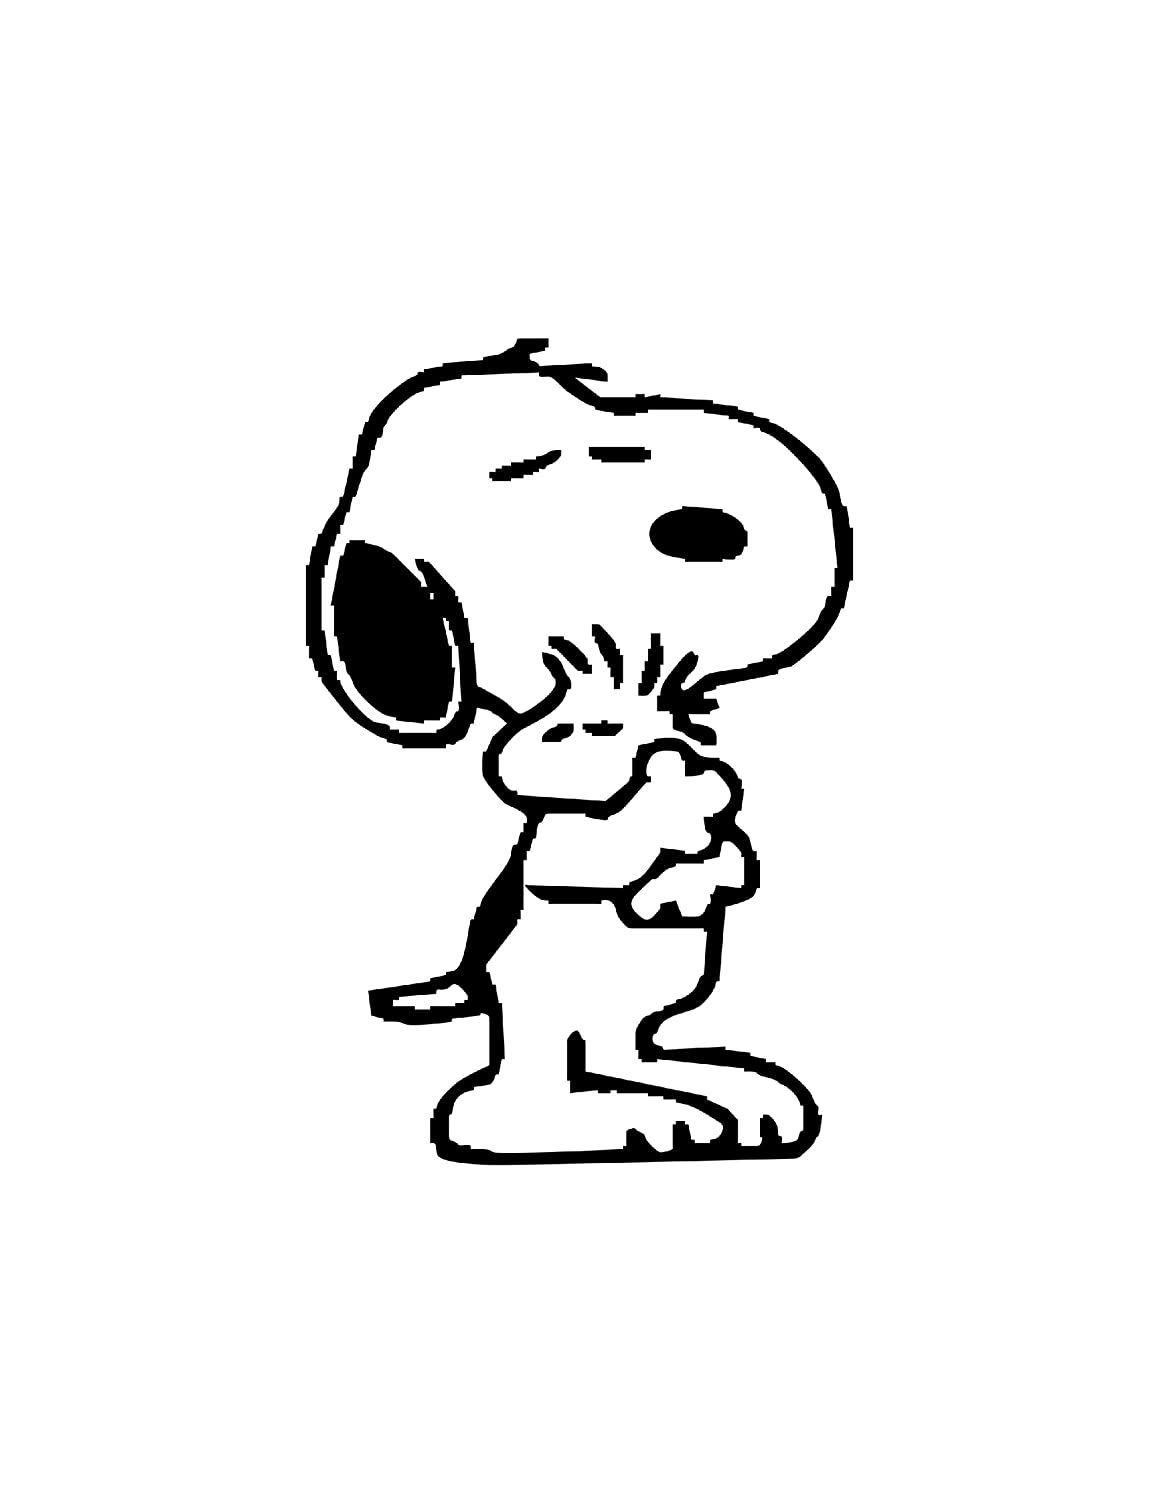 Woodstock From Peanuts Coloring Page Coloring Pages